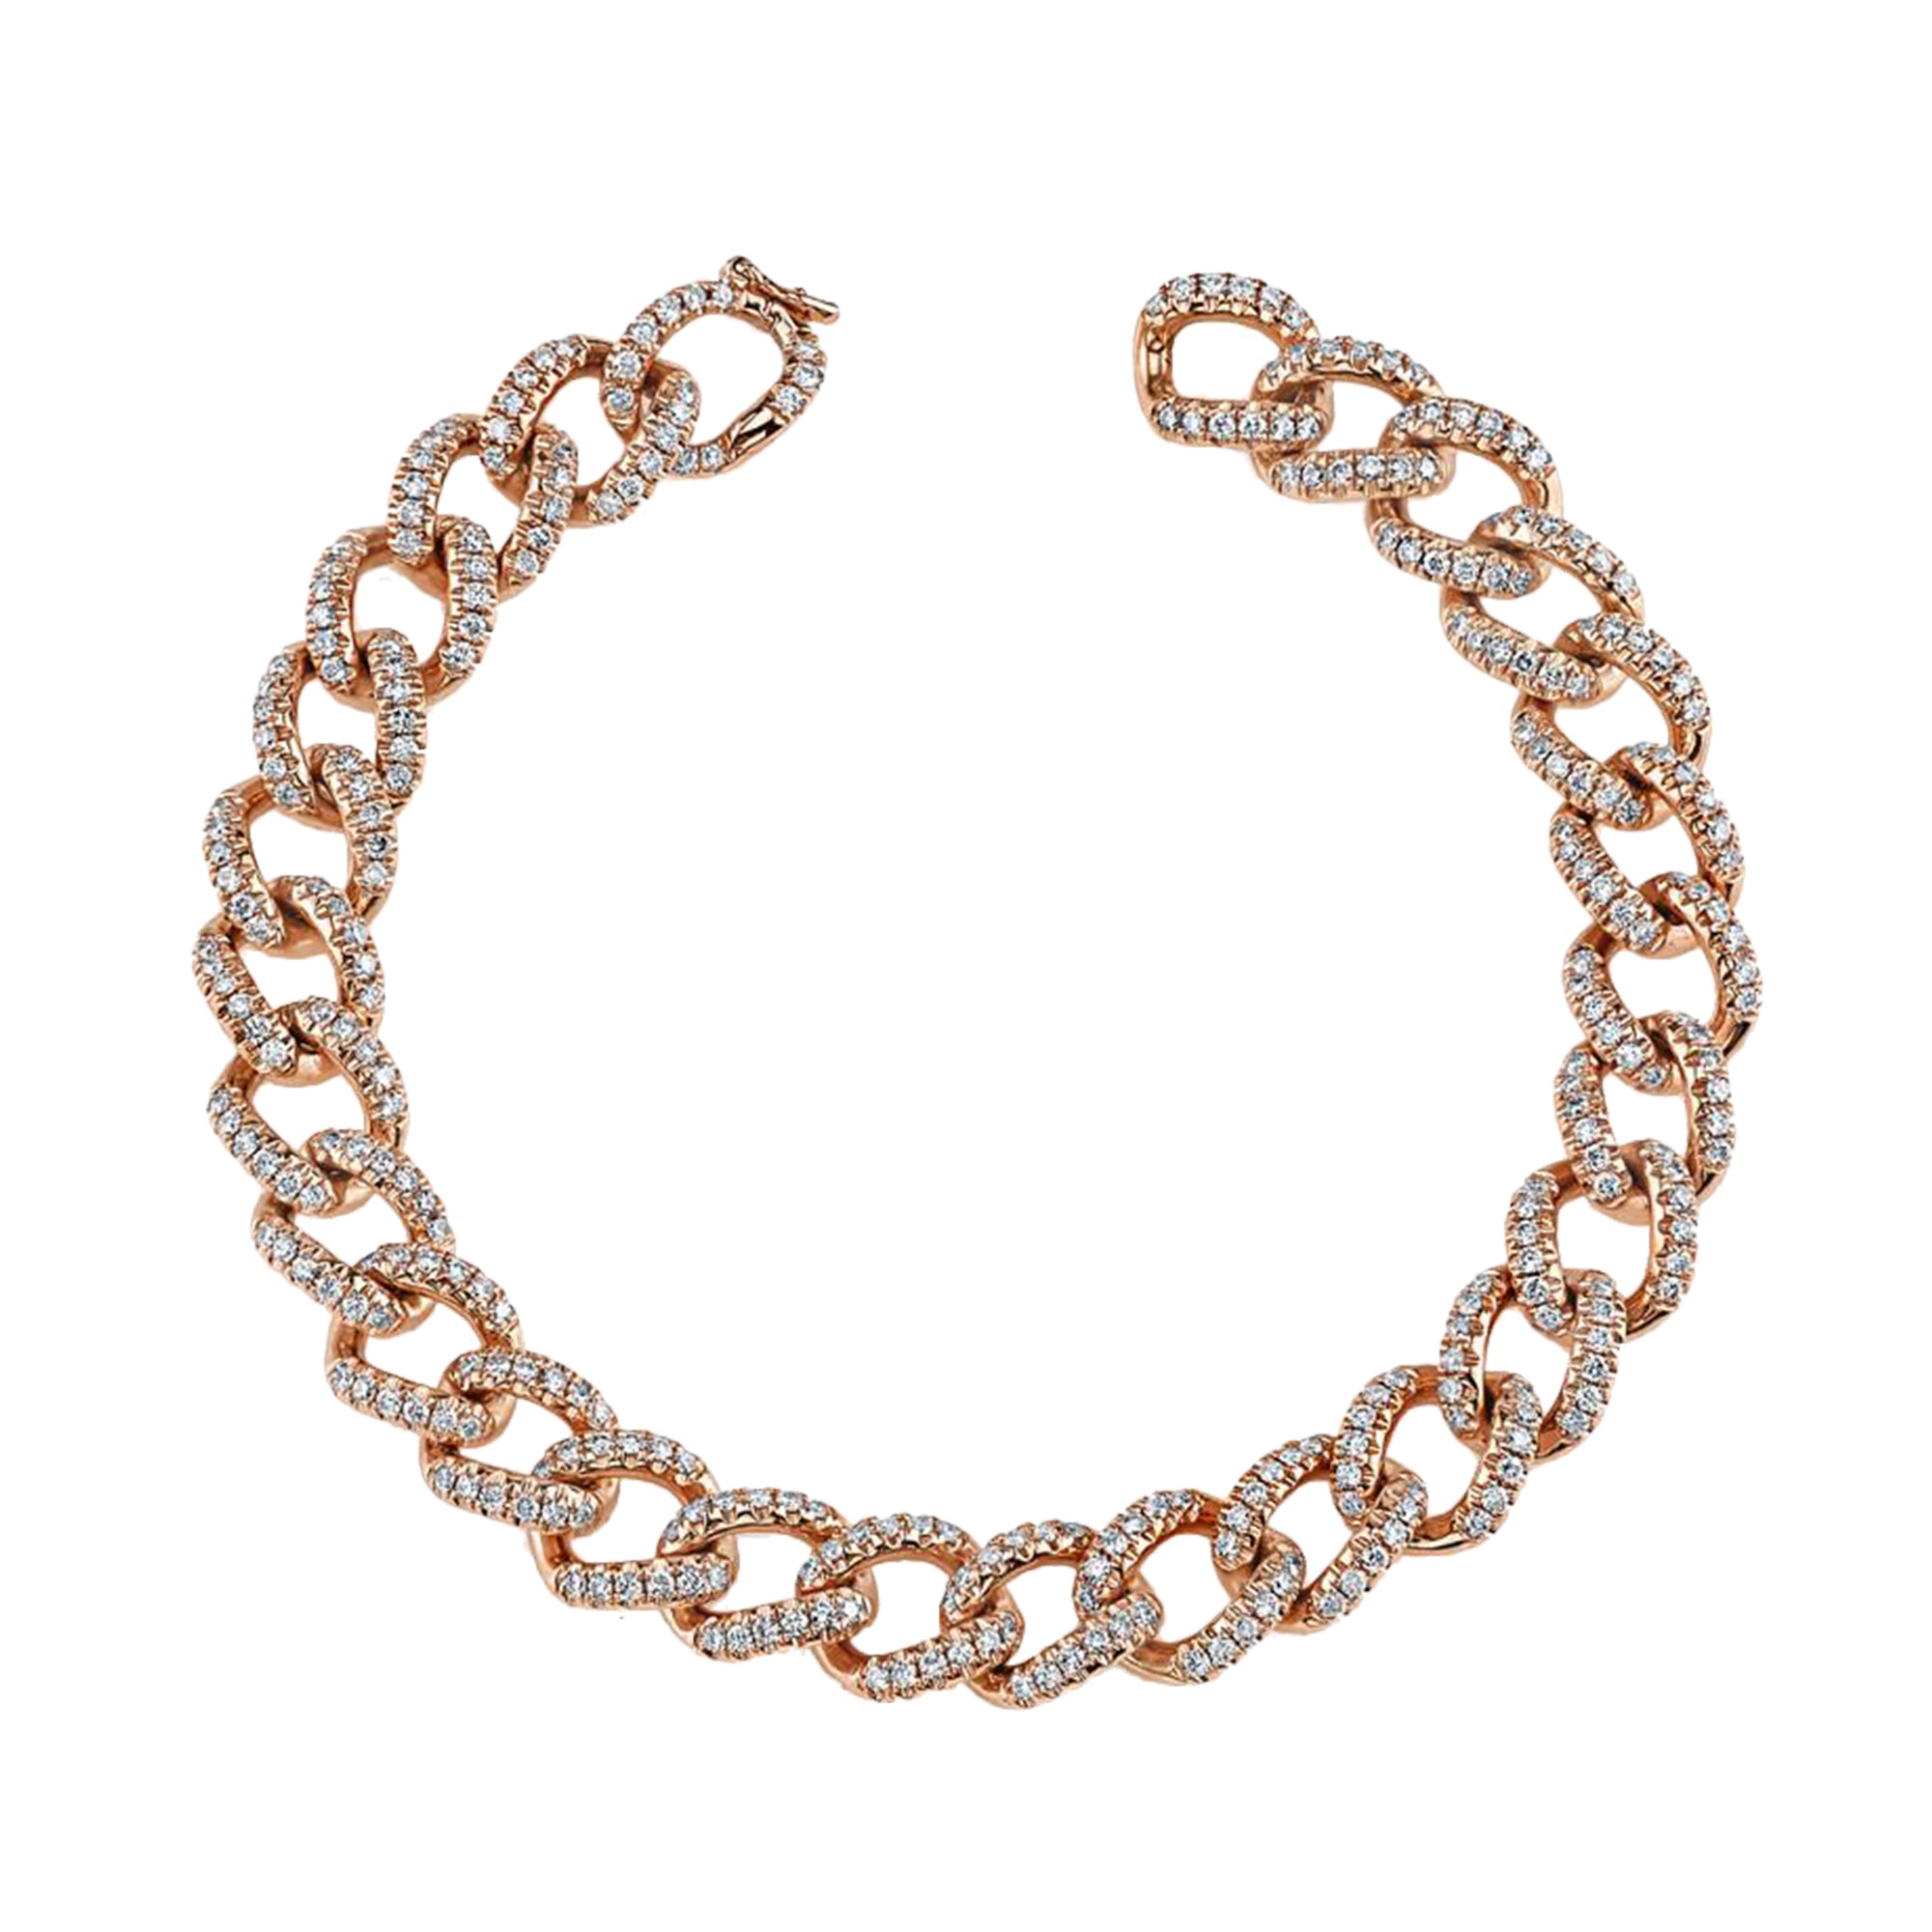 Gold & White Diamond Pave Link Bracelet by anita ko for Broken English Jewelry